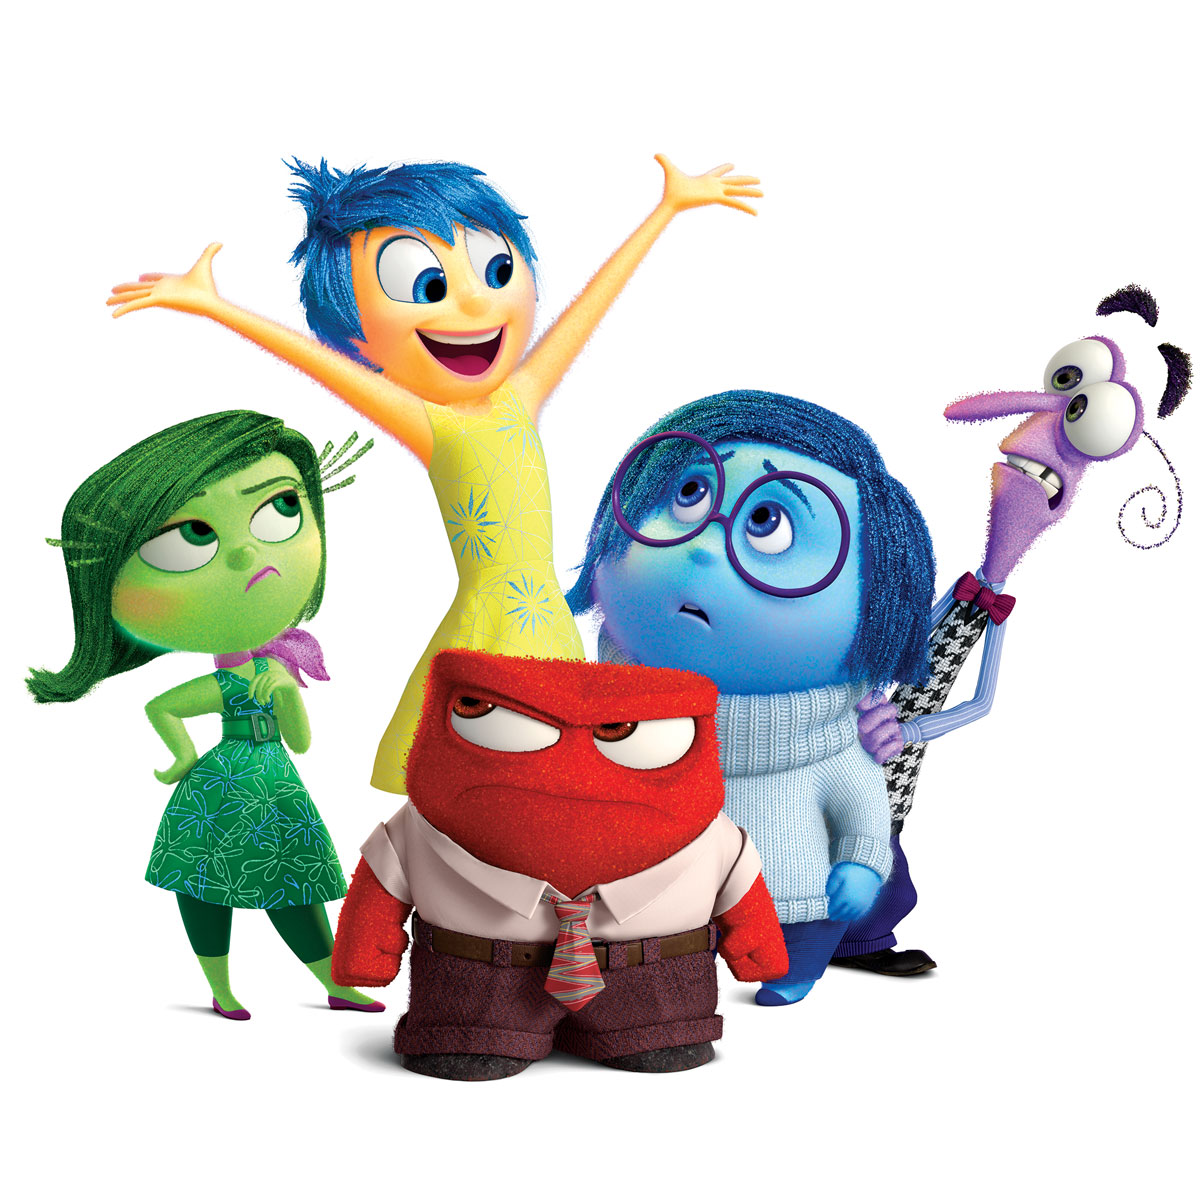 Movies Whendinosaursruledthemind Your Trailer May Not Have Been Originally Wired The Way Depicted And But Then I To Remember That None Of Trailers For Inside Out Really Grabbed Me Either Movie Is Being Hailed As One Pixars Best Films